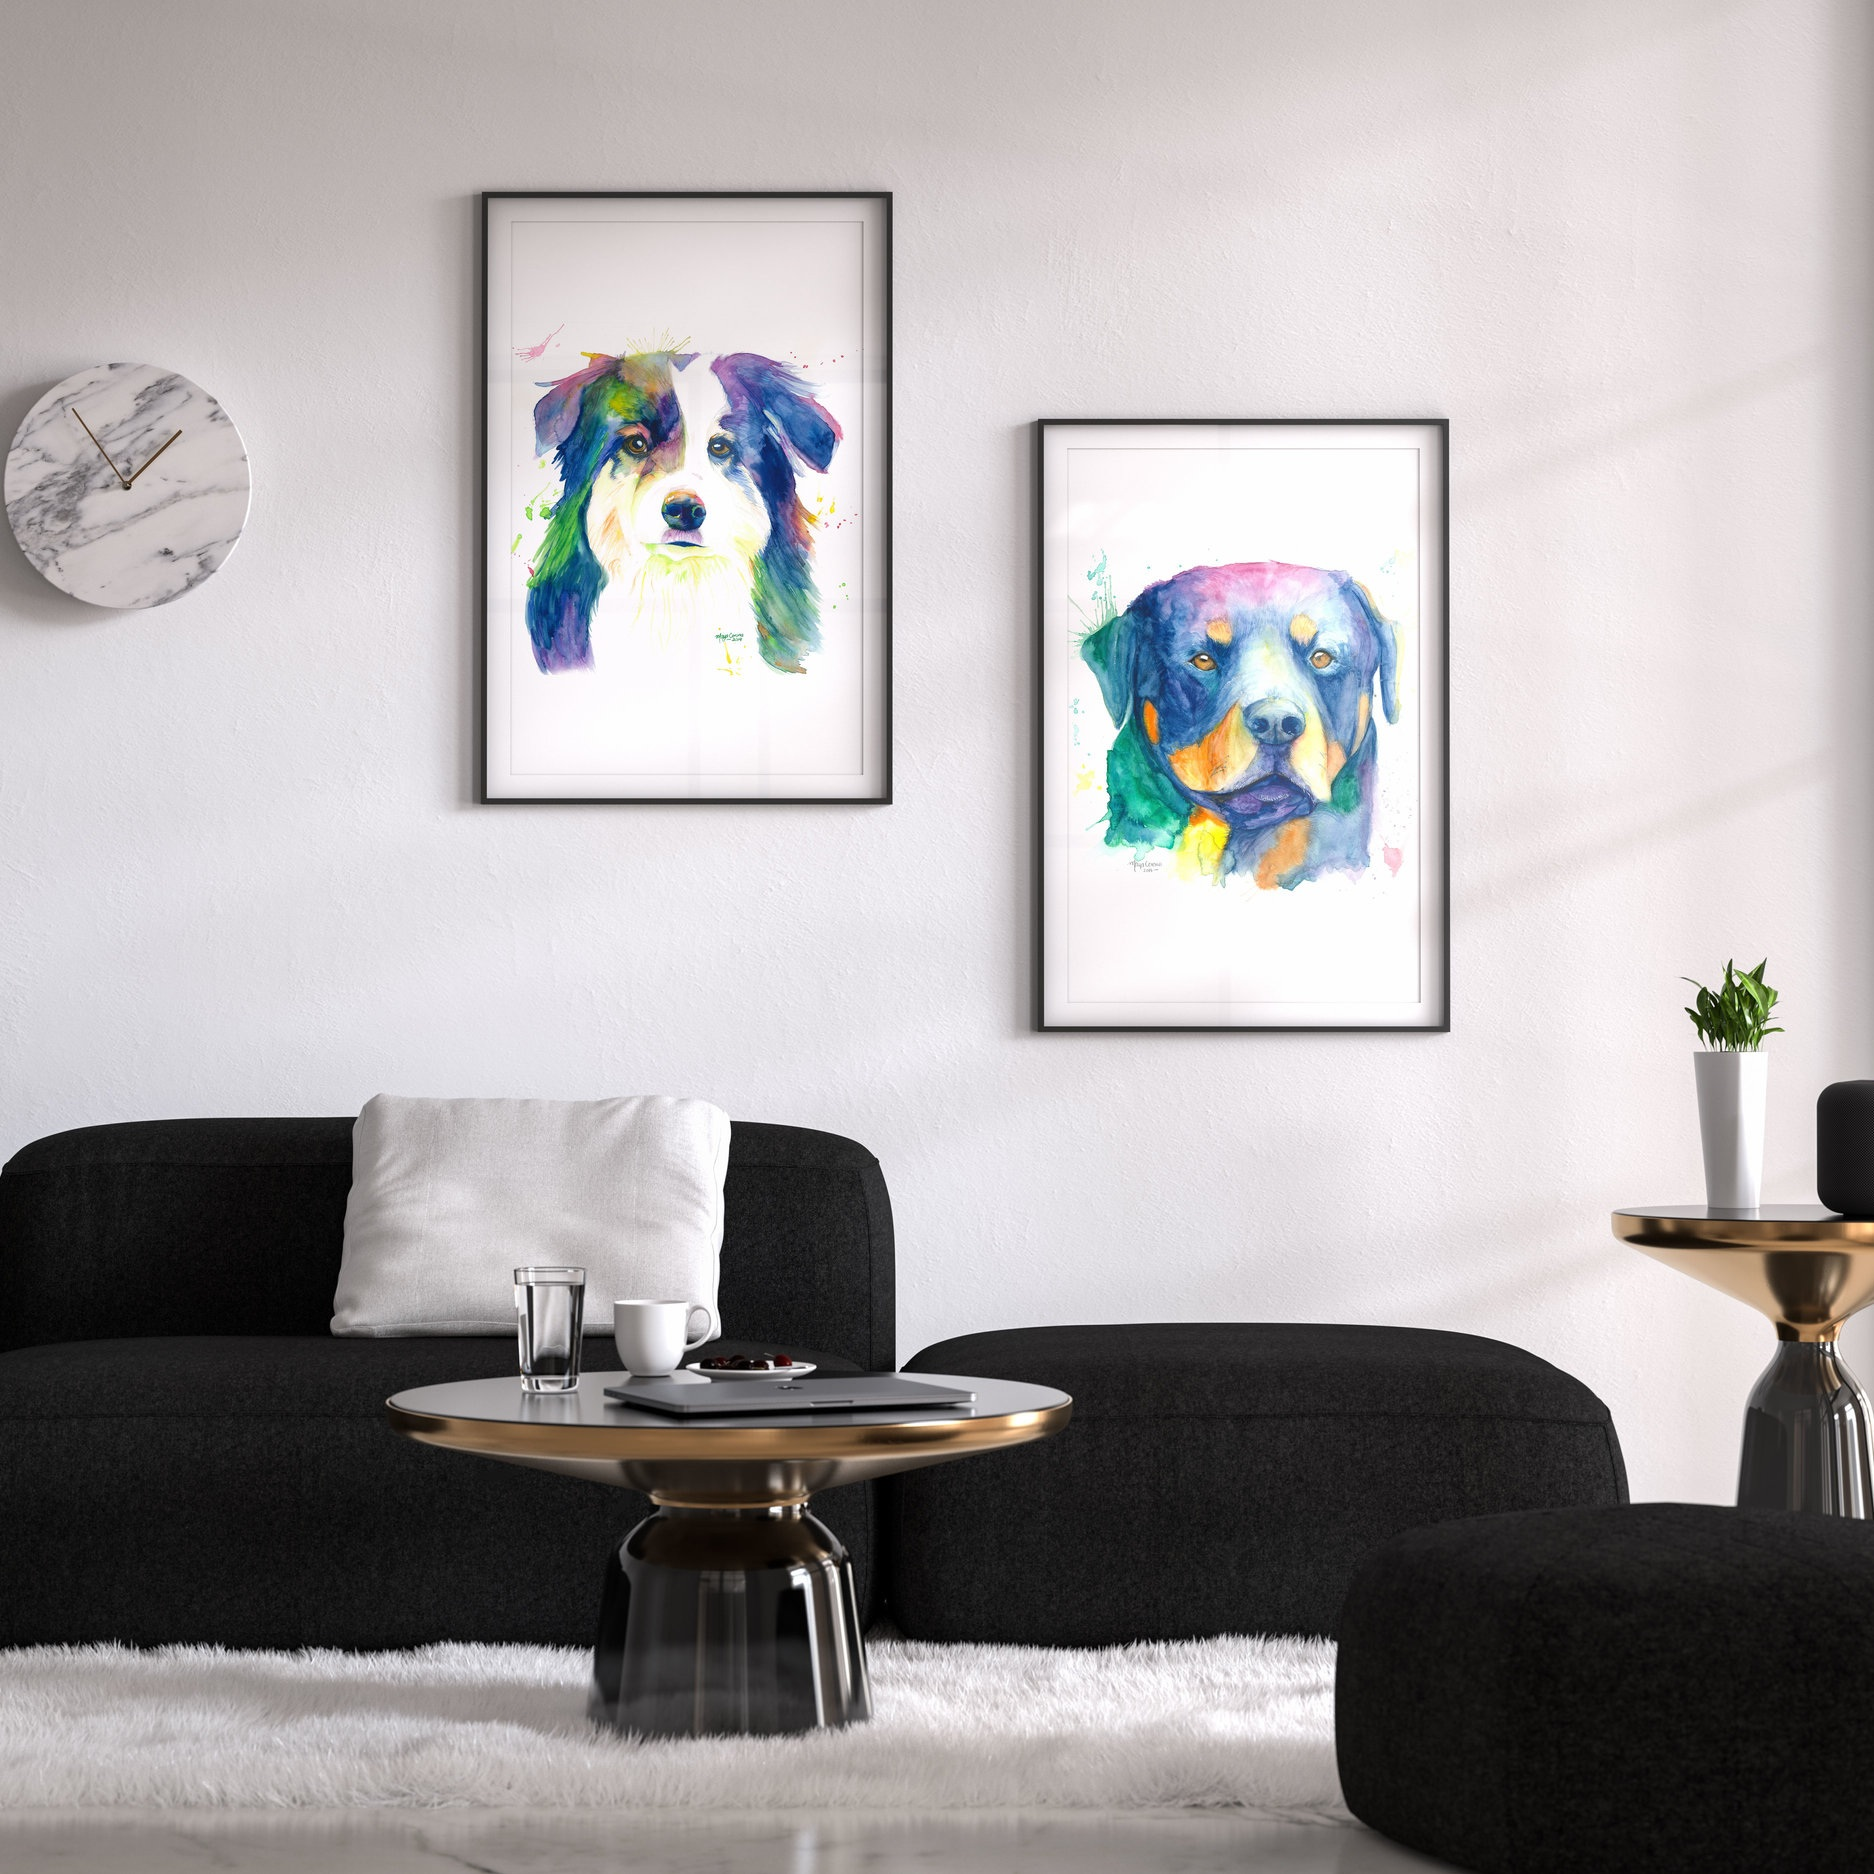 Chelsea & Bruiser - ✰✰✰✰✰Maya captured the energy and characters in both of our dogs. With her amazing talent she managed to bring them to life with a splash of colour. I would HIGHLY recommend having a portrait done of your FURever best friend!—Donna Crane, Calgary AB - Canada